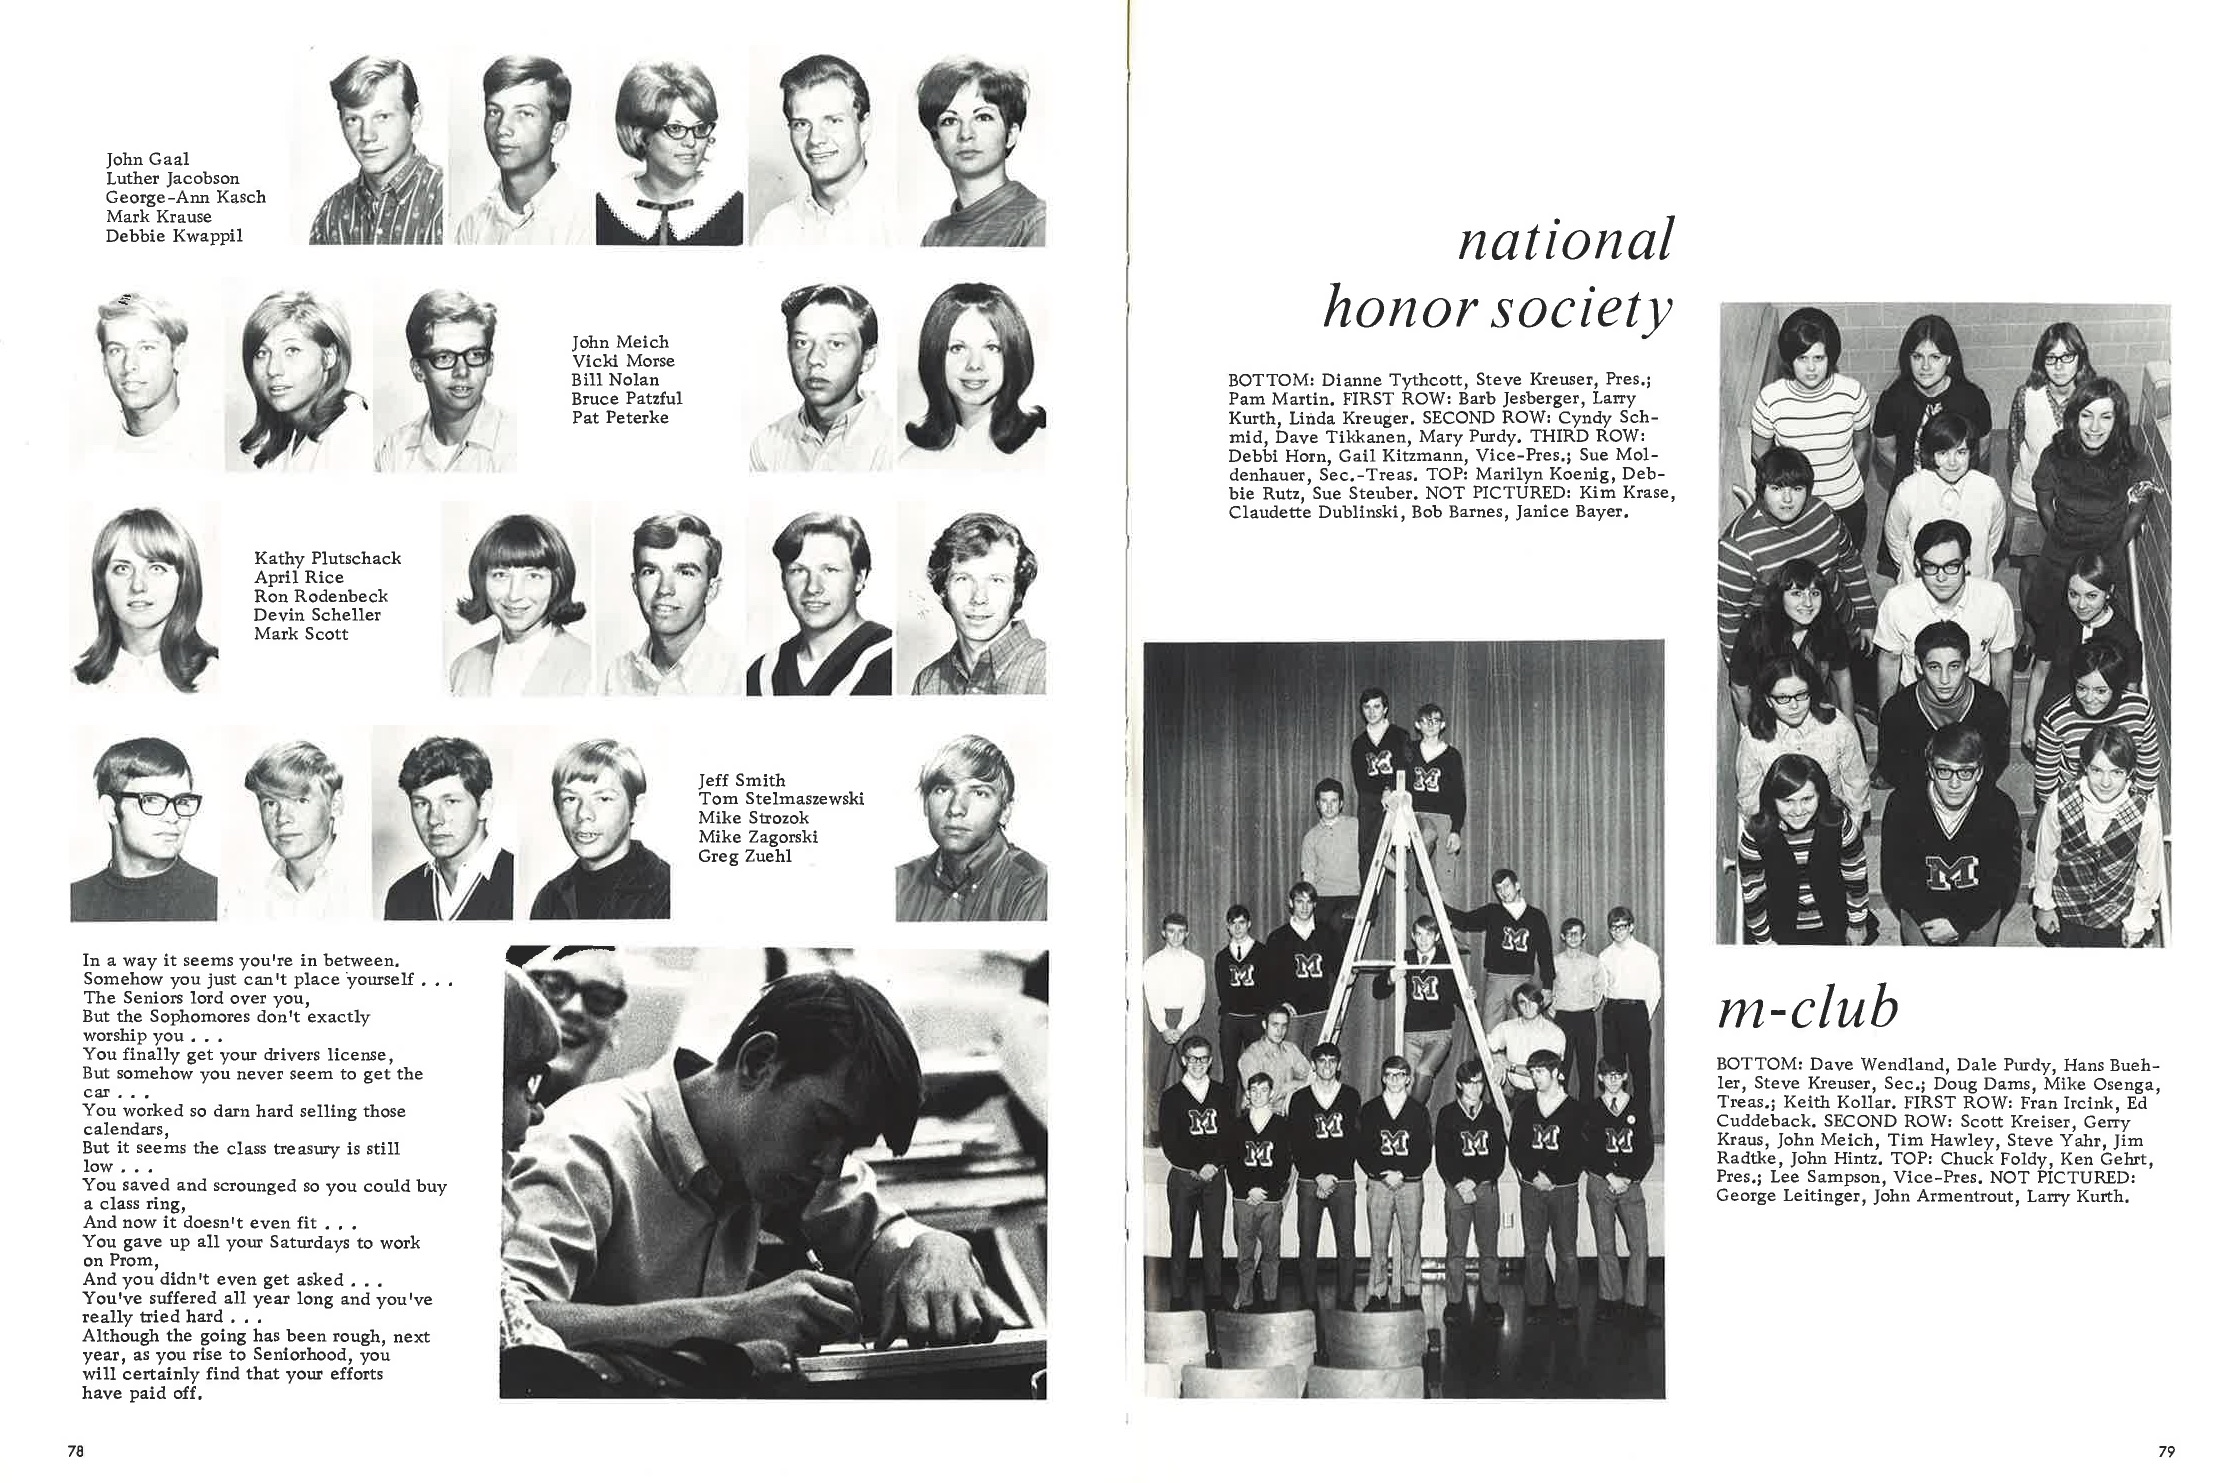 1970_Yearbook_78-79.jpg